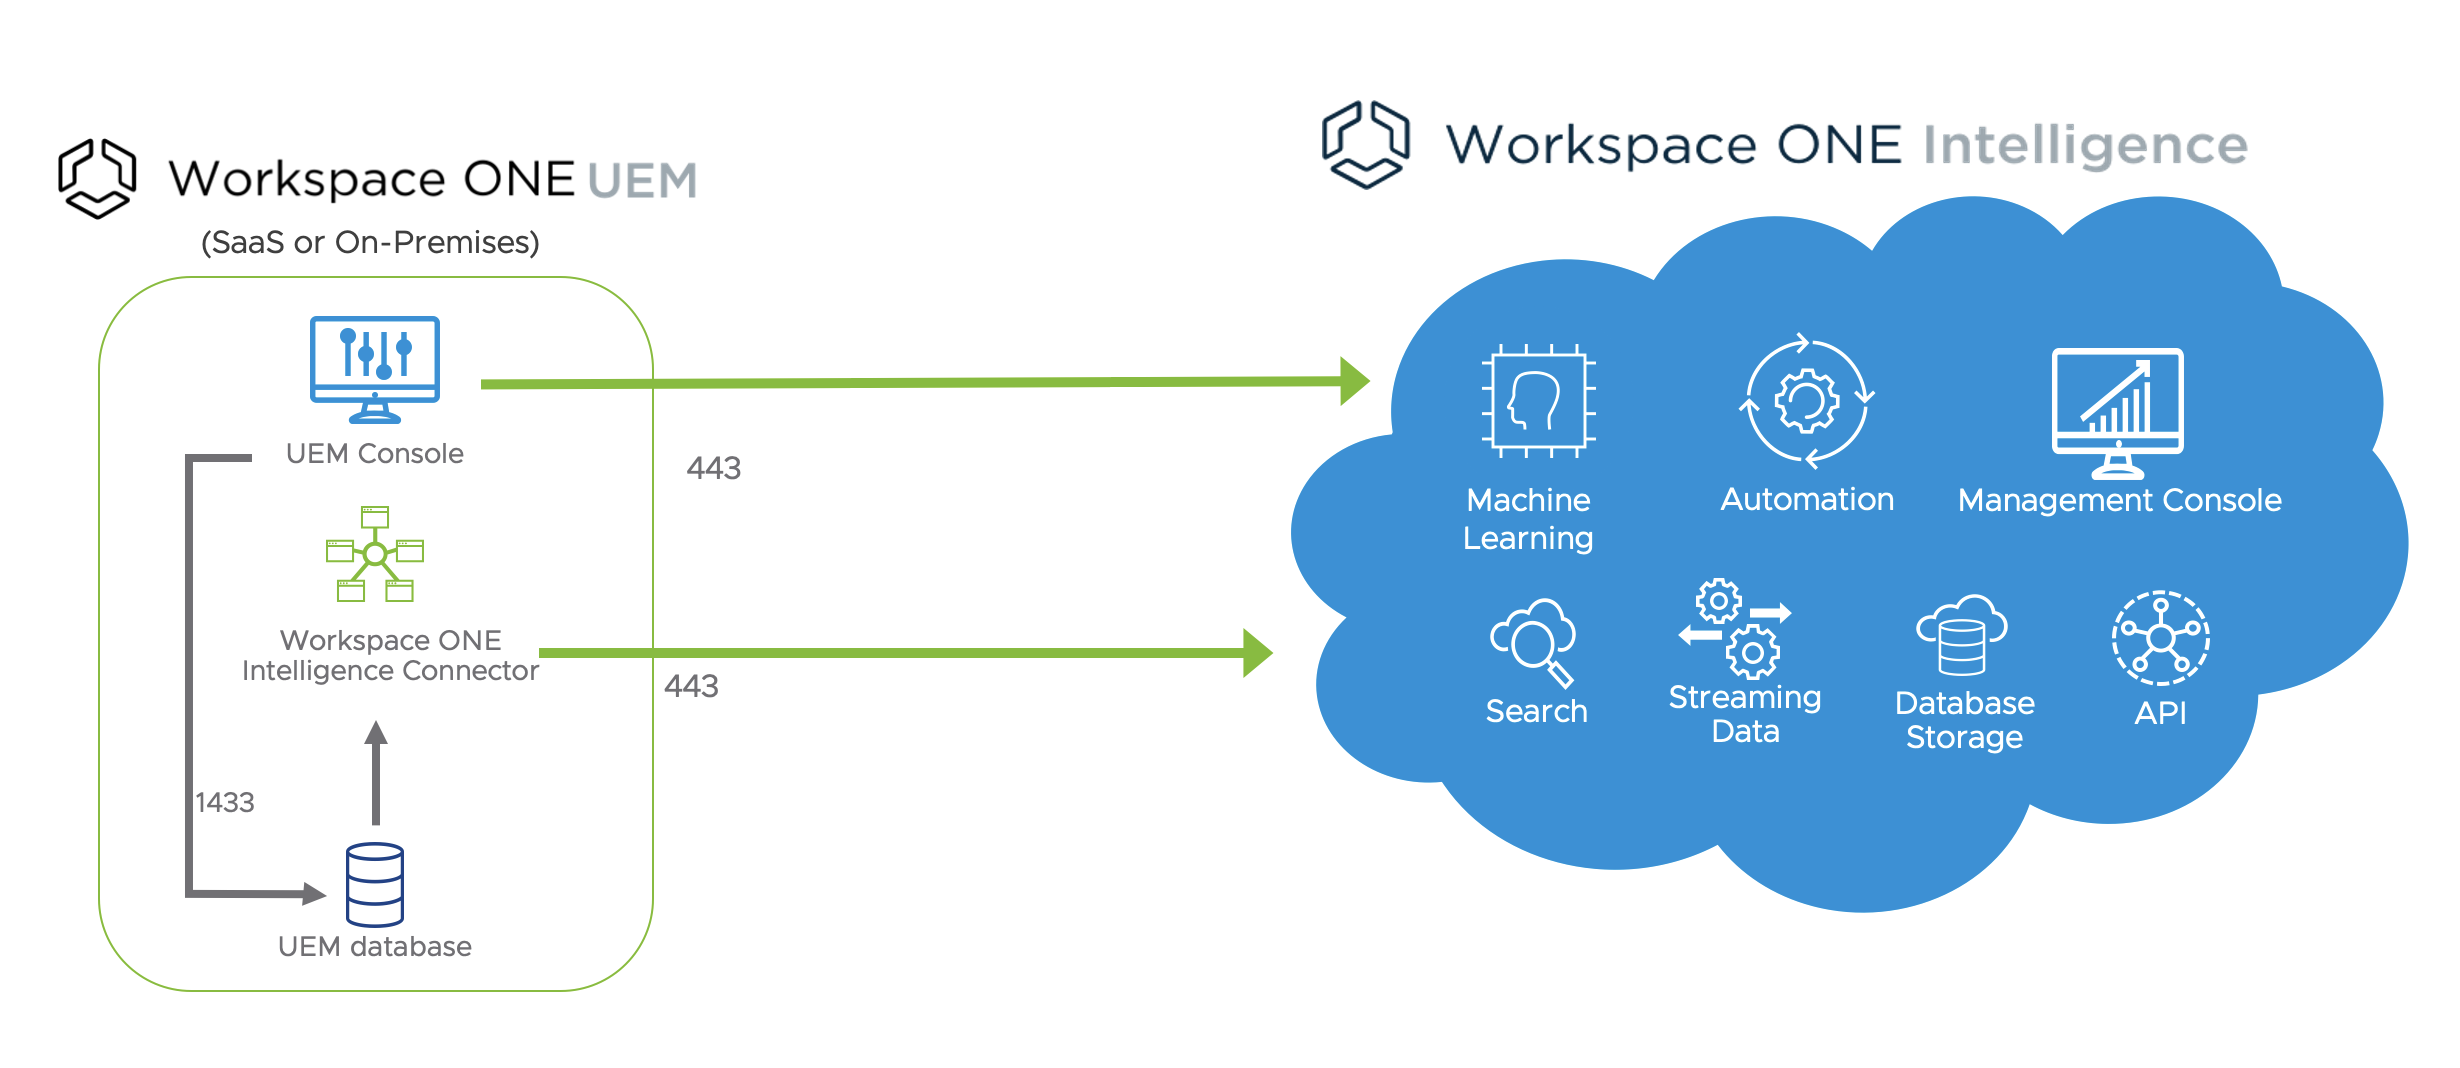 Workspace ONE Intelligence Components for UEM